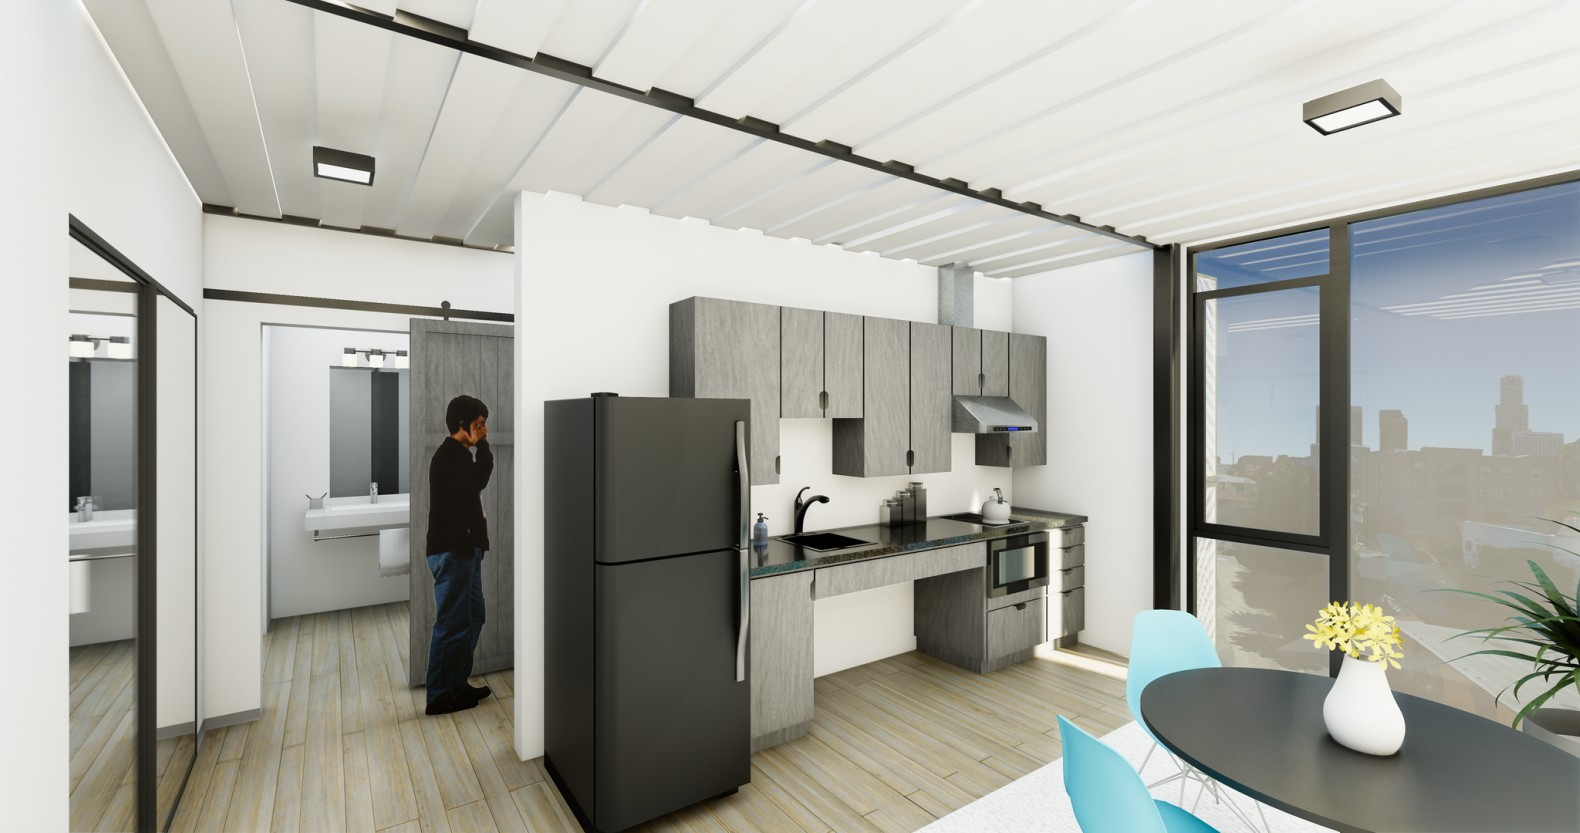 Shipping-container development designed for Los Angeles ...